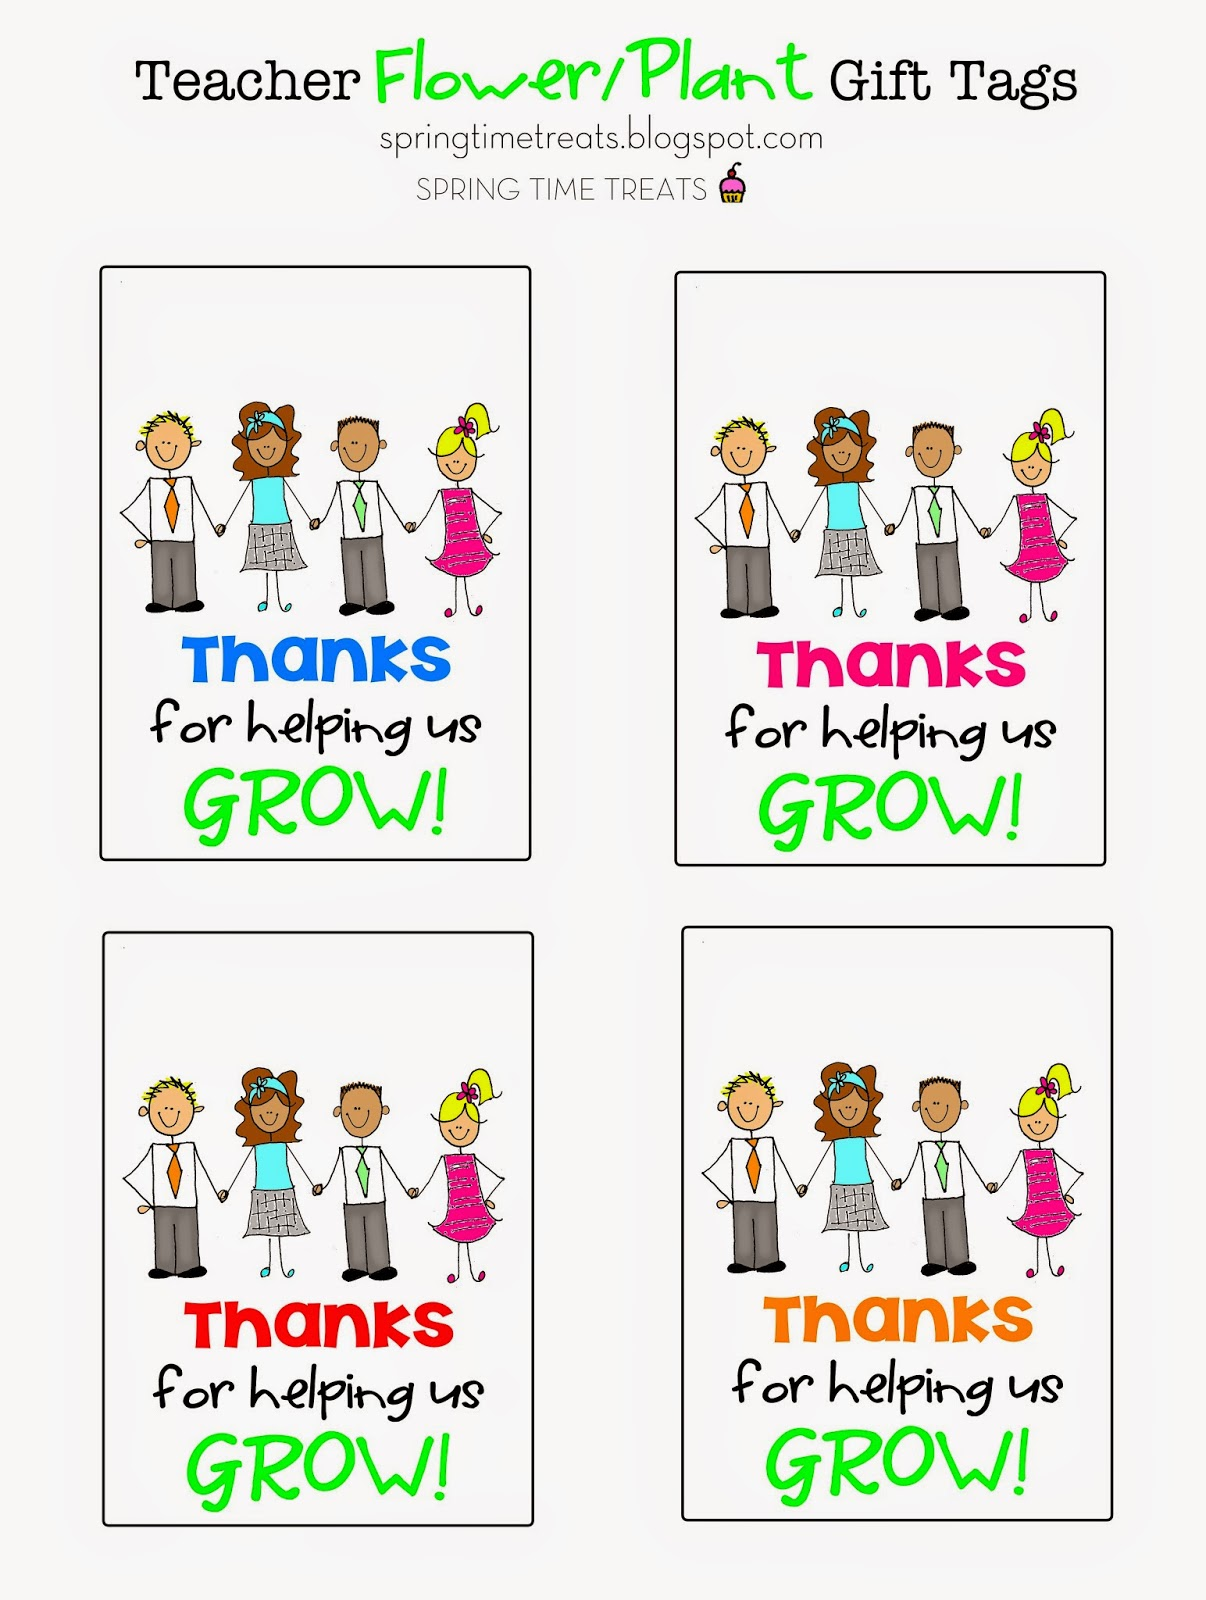 Spring Time Treats Free Teacher Appreciation Printables